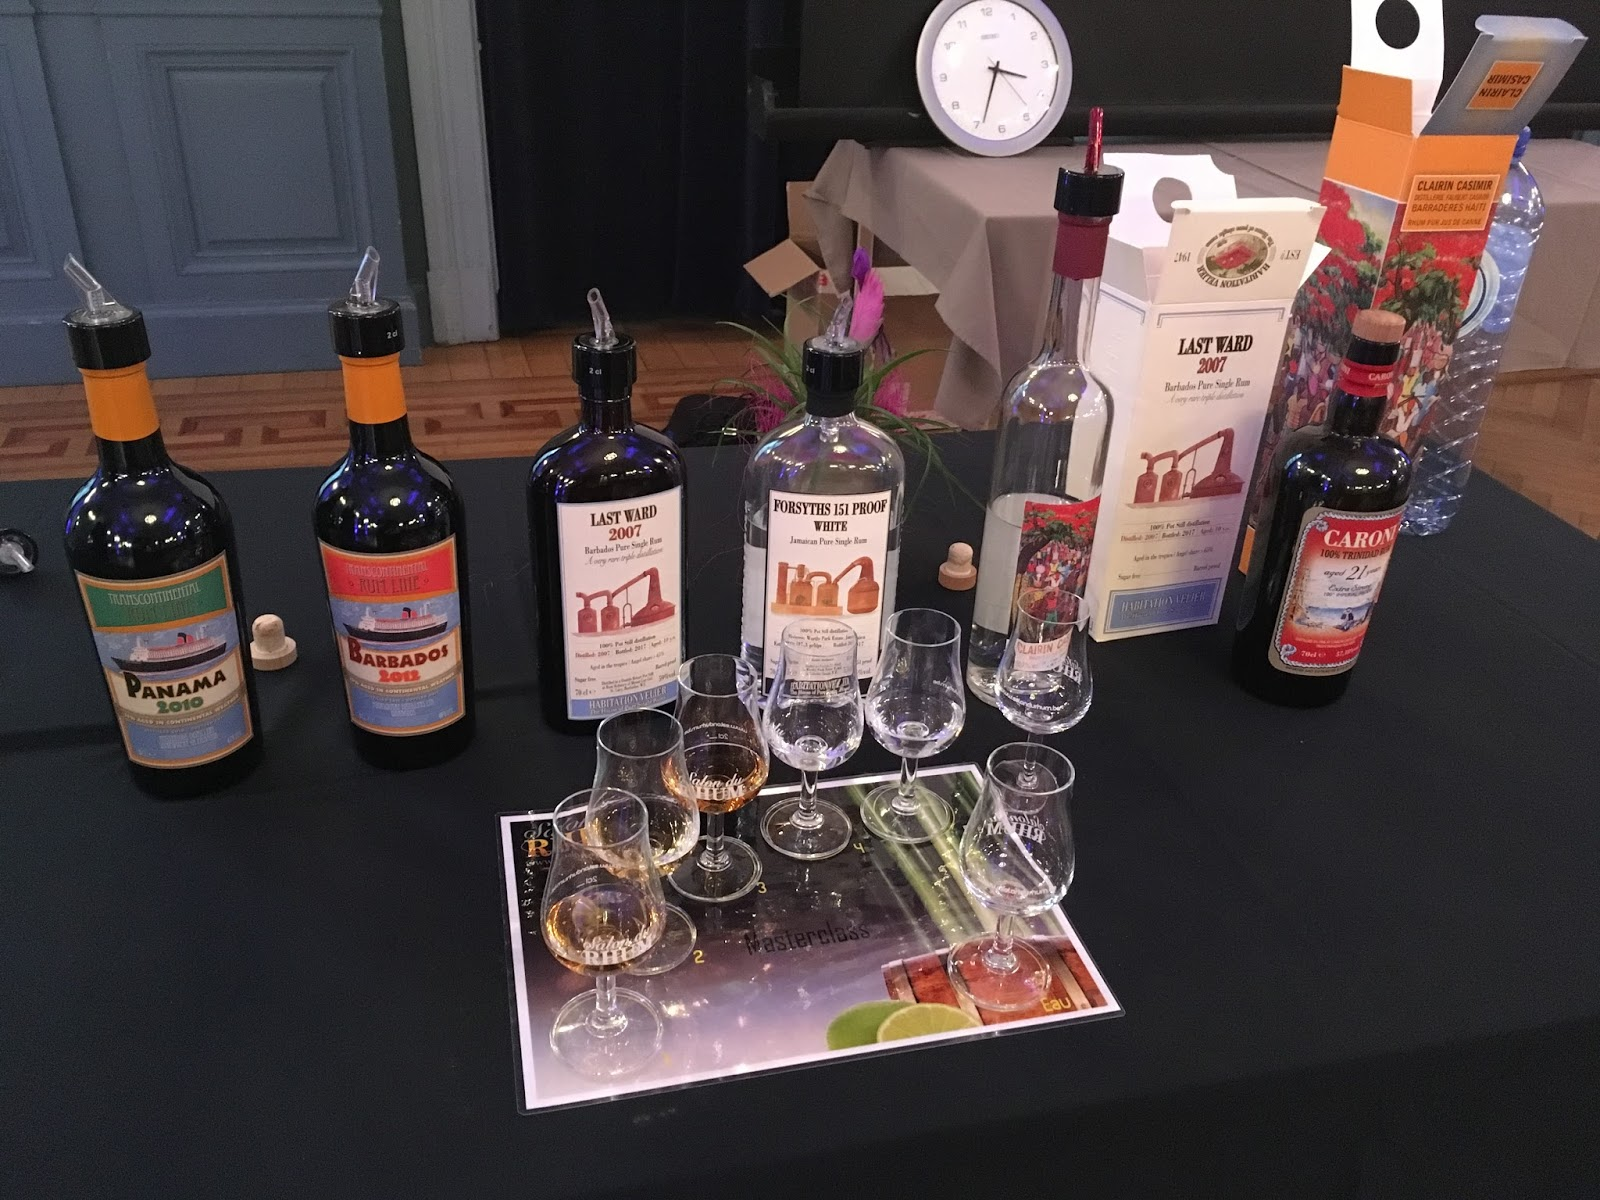 Rhum n 39 whisky salon du rhum 2017 journ e d tente et for Salon du rhum